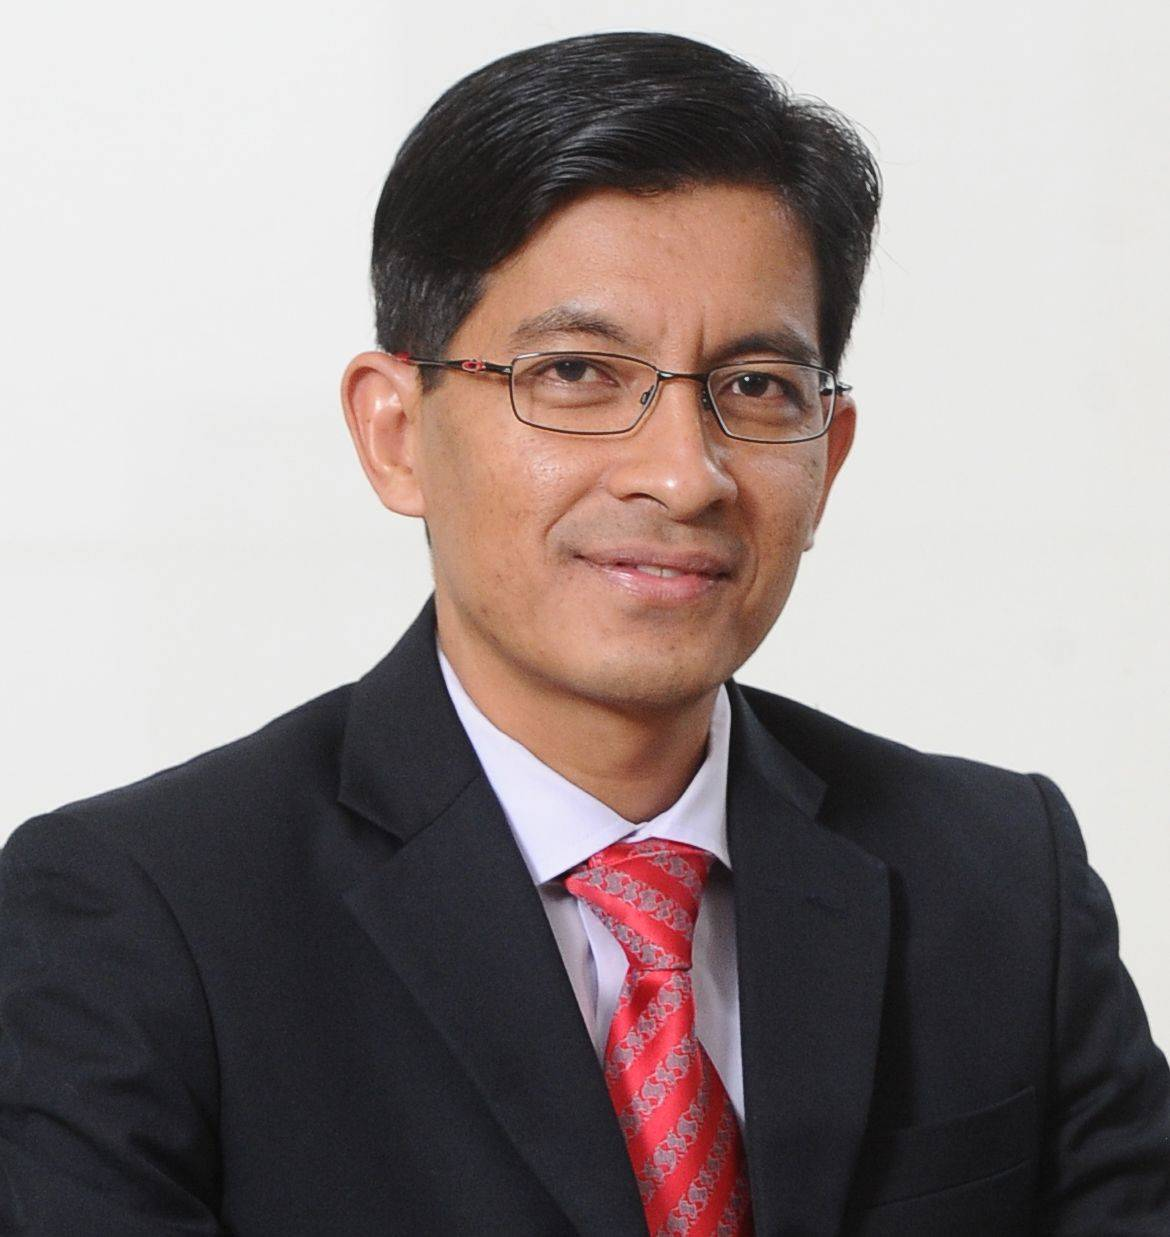 Bank Islam CEO Mohd Muazzam Mohamed said the initiative is a continuation of the Bank Islam Vendor Financing Programme (VFP) to boost the growth of Malaysia's oil and gas (O&G) sector.